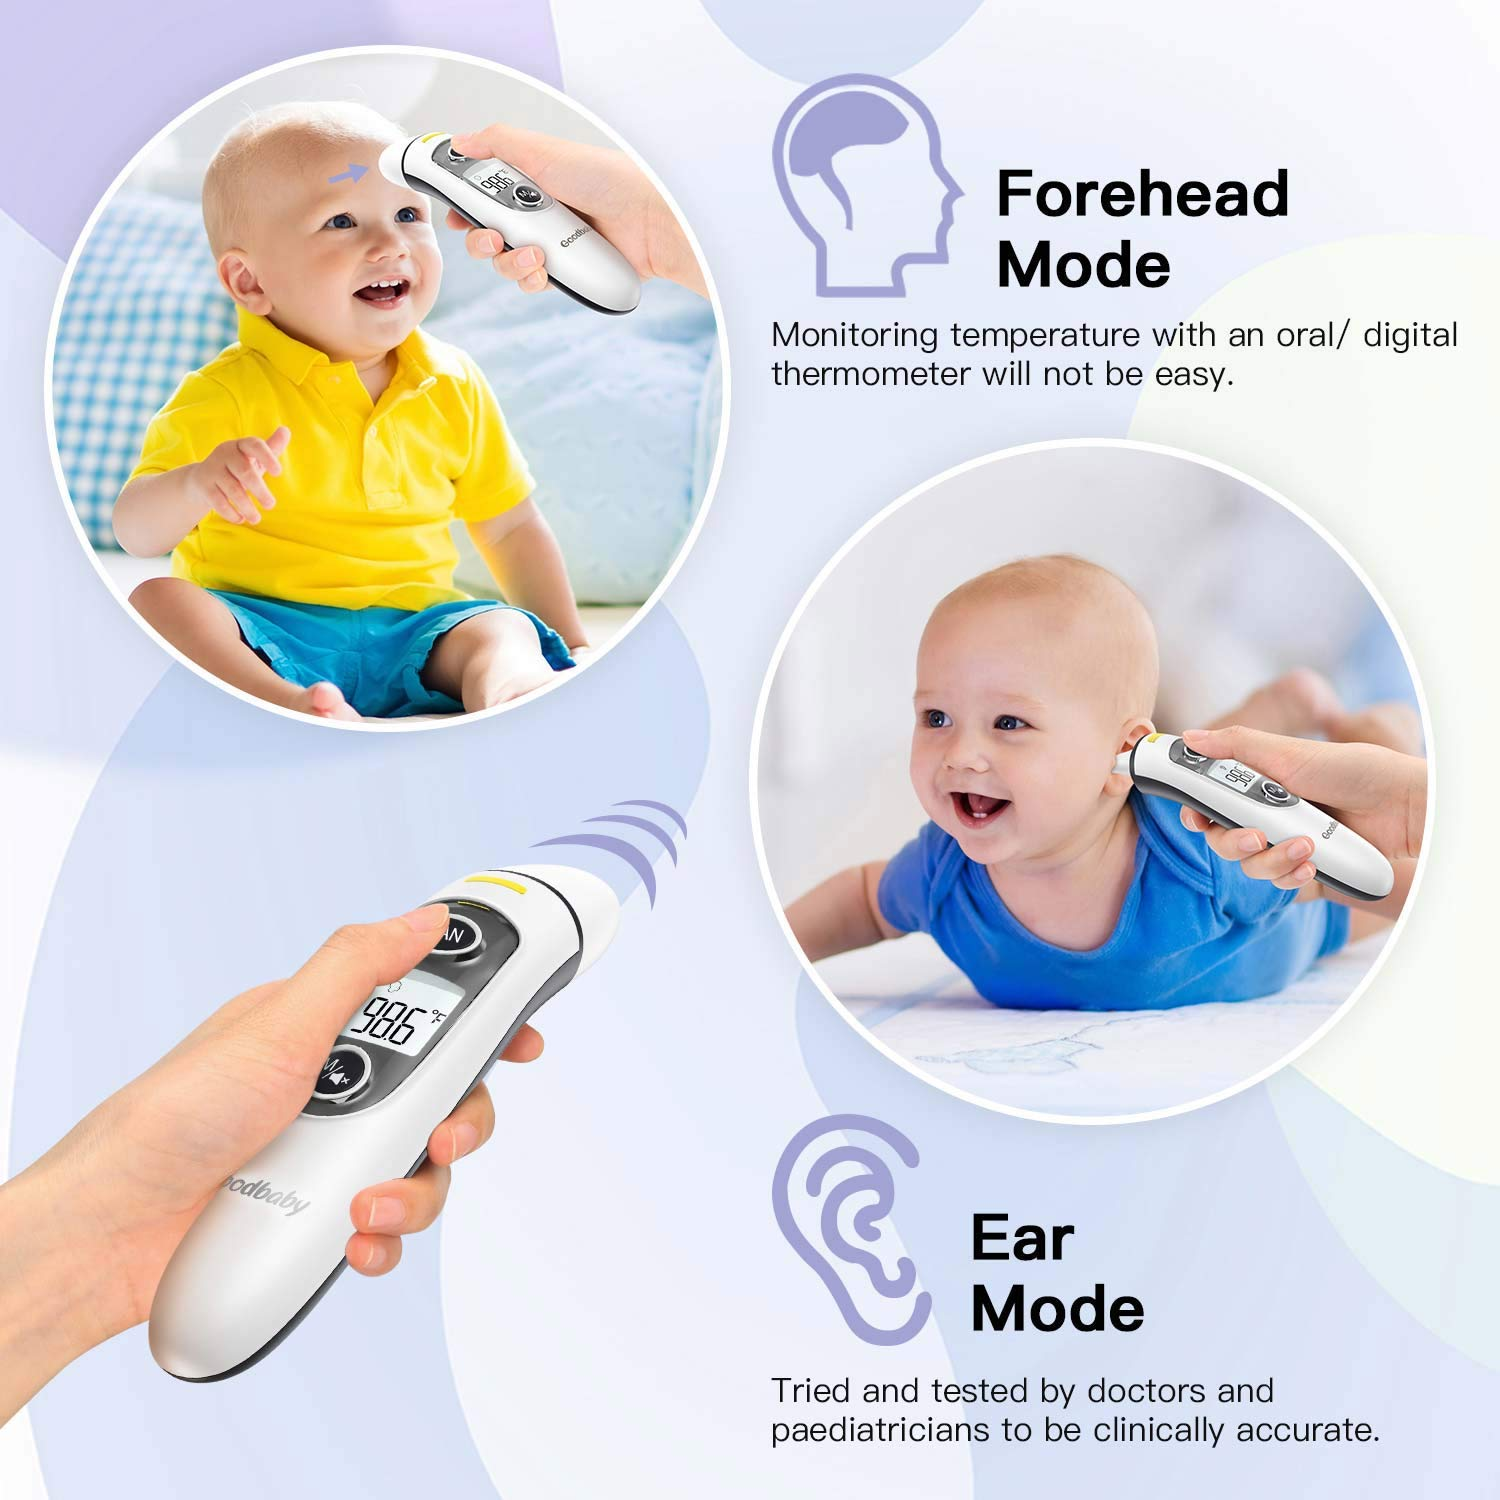 Ideal for Babies Ear and Forehead Function with Fever Alarm and Memory Function Goodbaby Ear Thermometer Children 2020 Updated Adults Indoor and Outdoor Use Infants